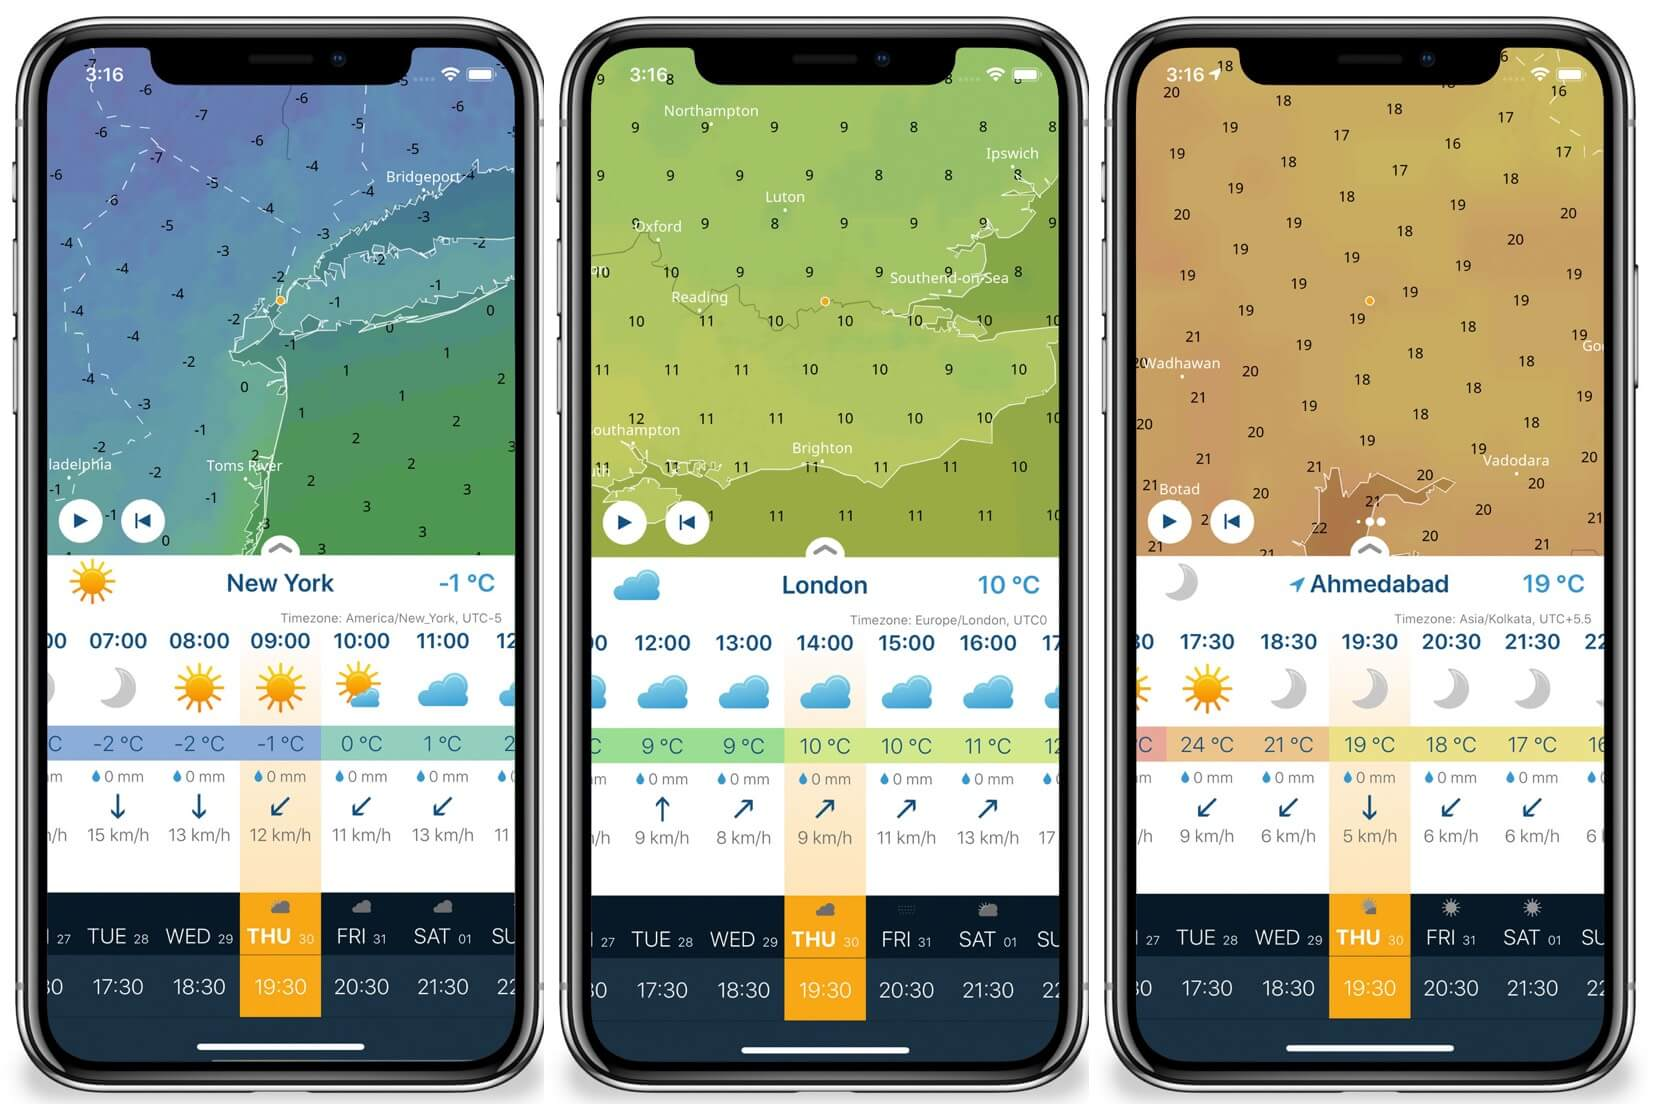 Search Multiple Cities Weather on Ventusky iPhone App